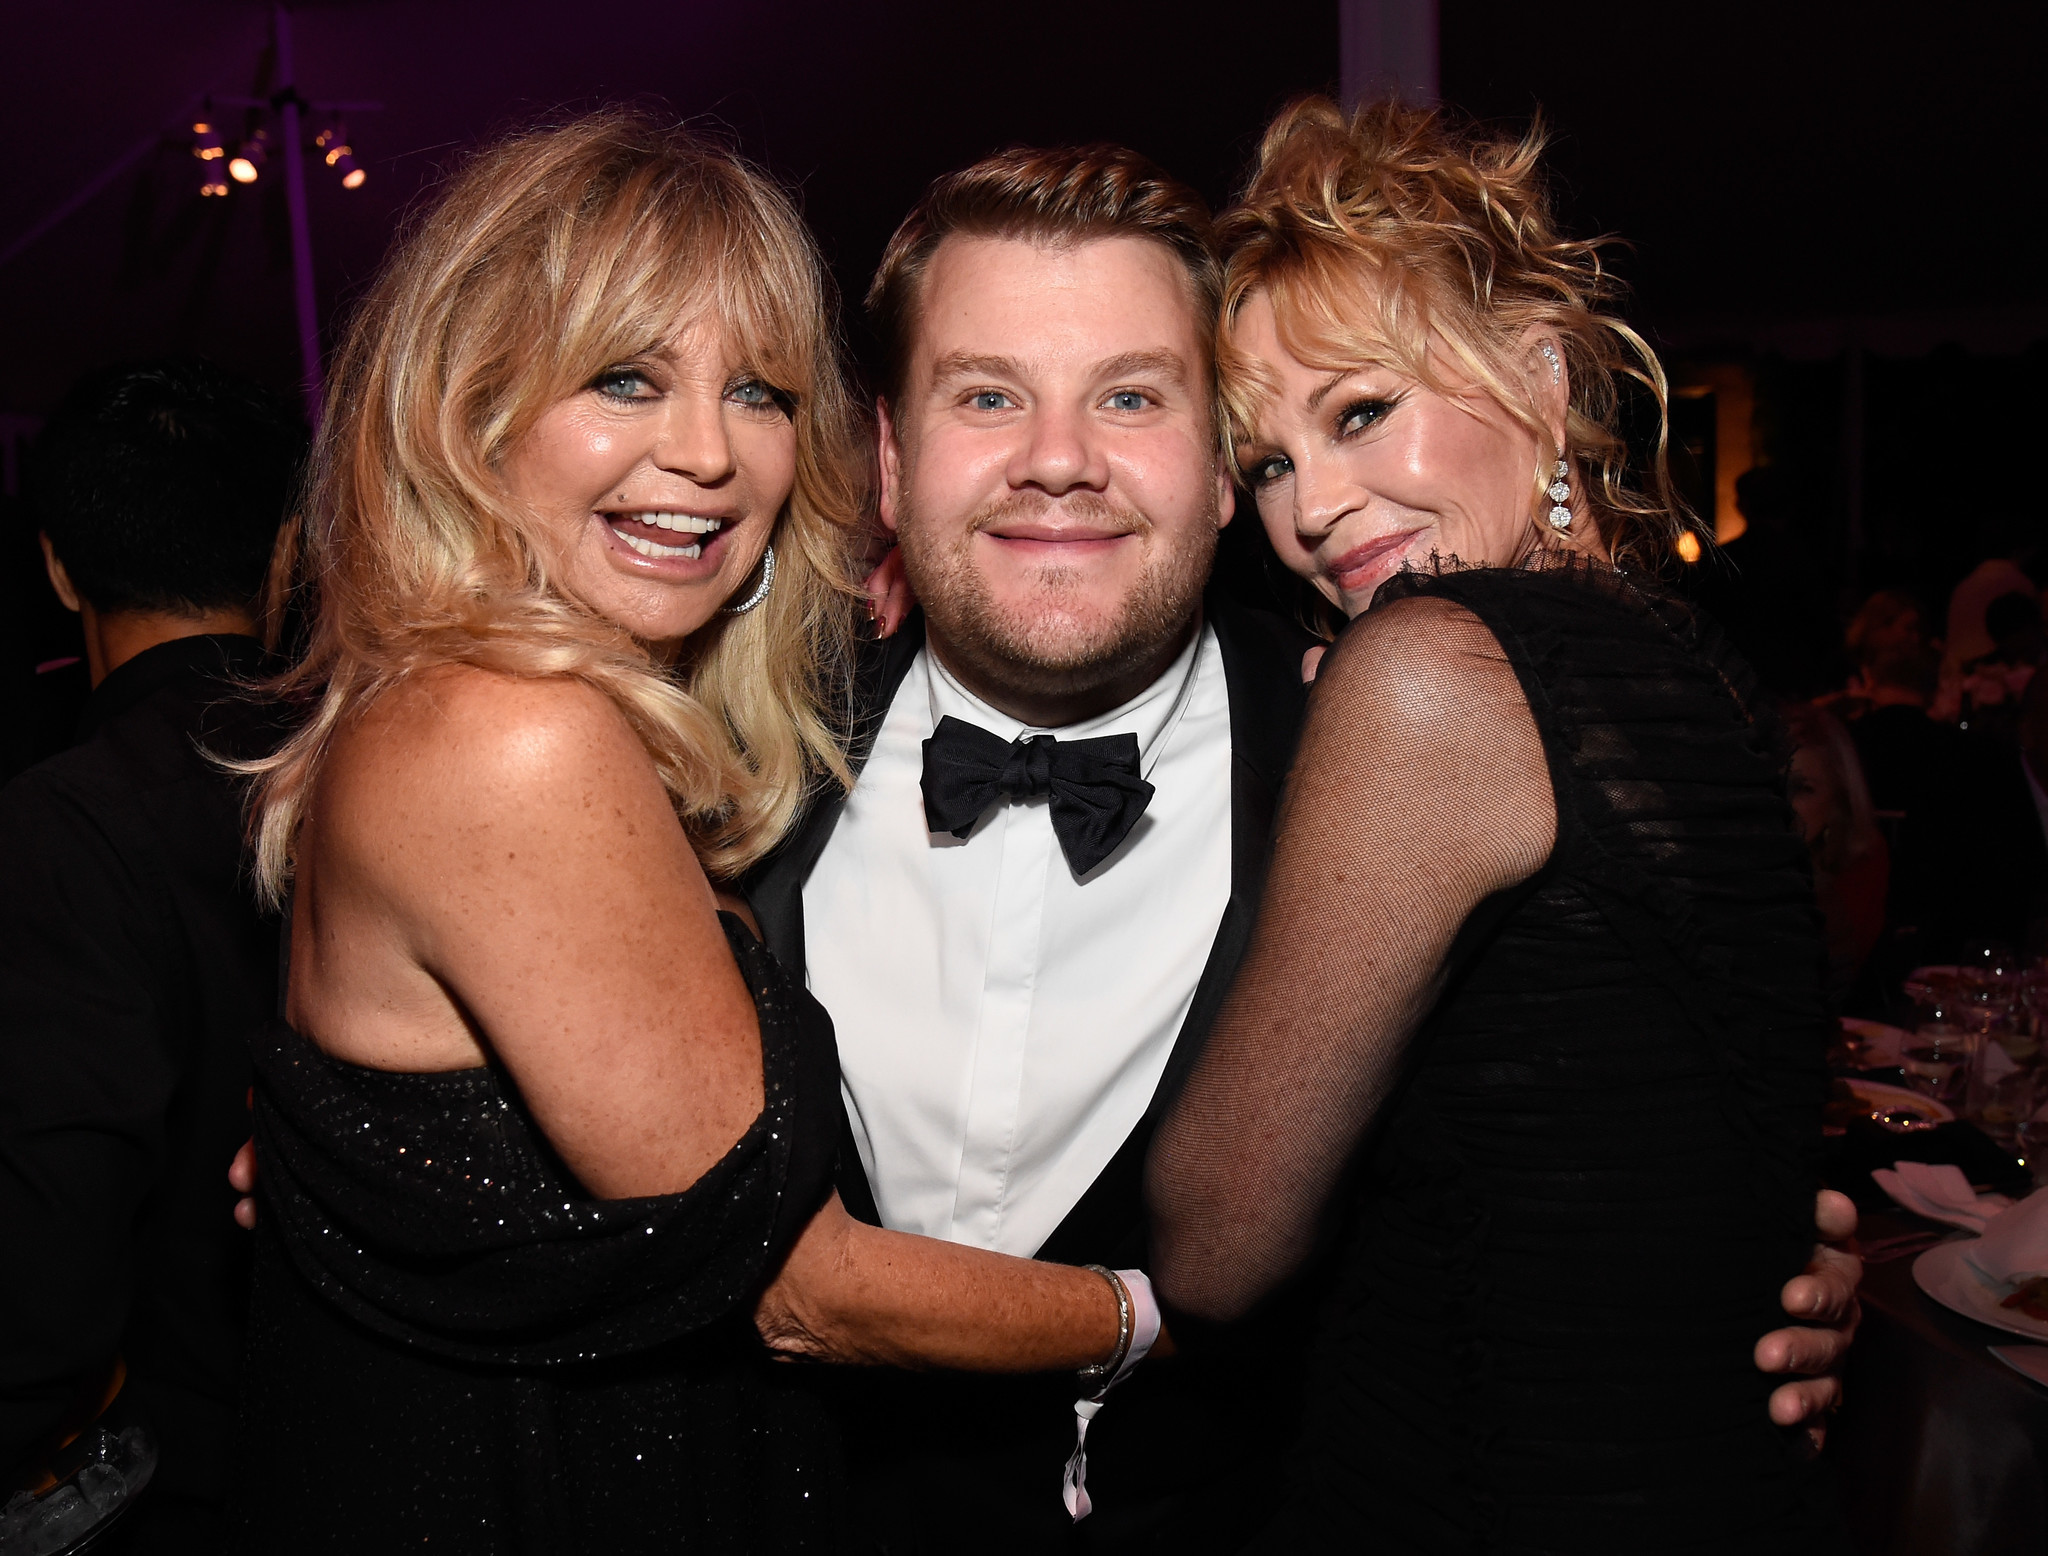 Goldie Hawn, from left, event host James Corden and Melanie Griffith attend the amfAR Gala Los Angeles at Ron Burkle's Greenacres estate in Beverly Hills.